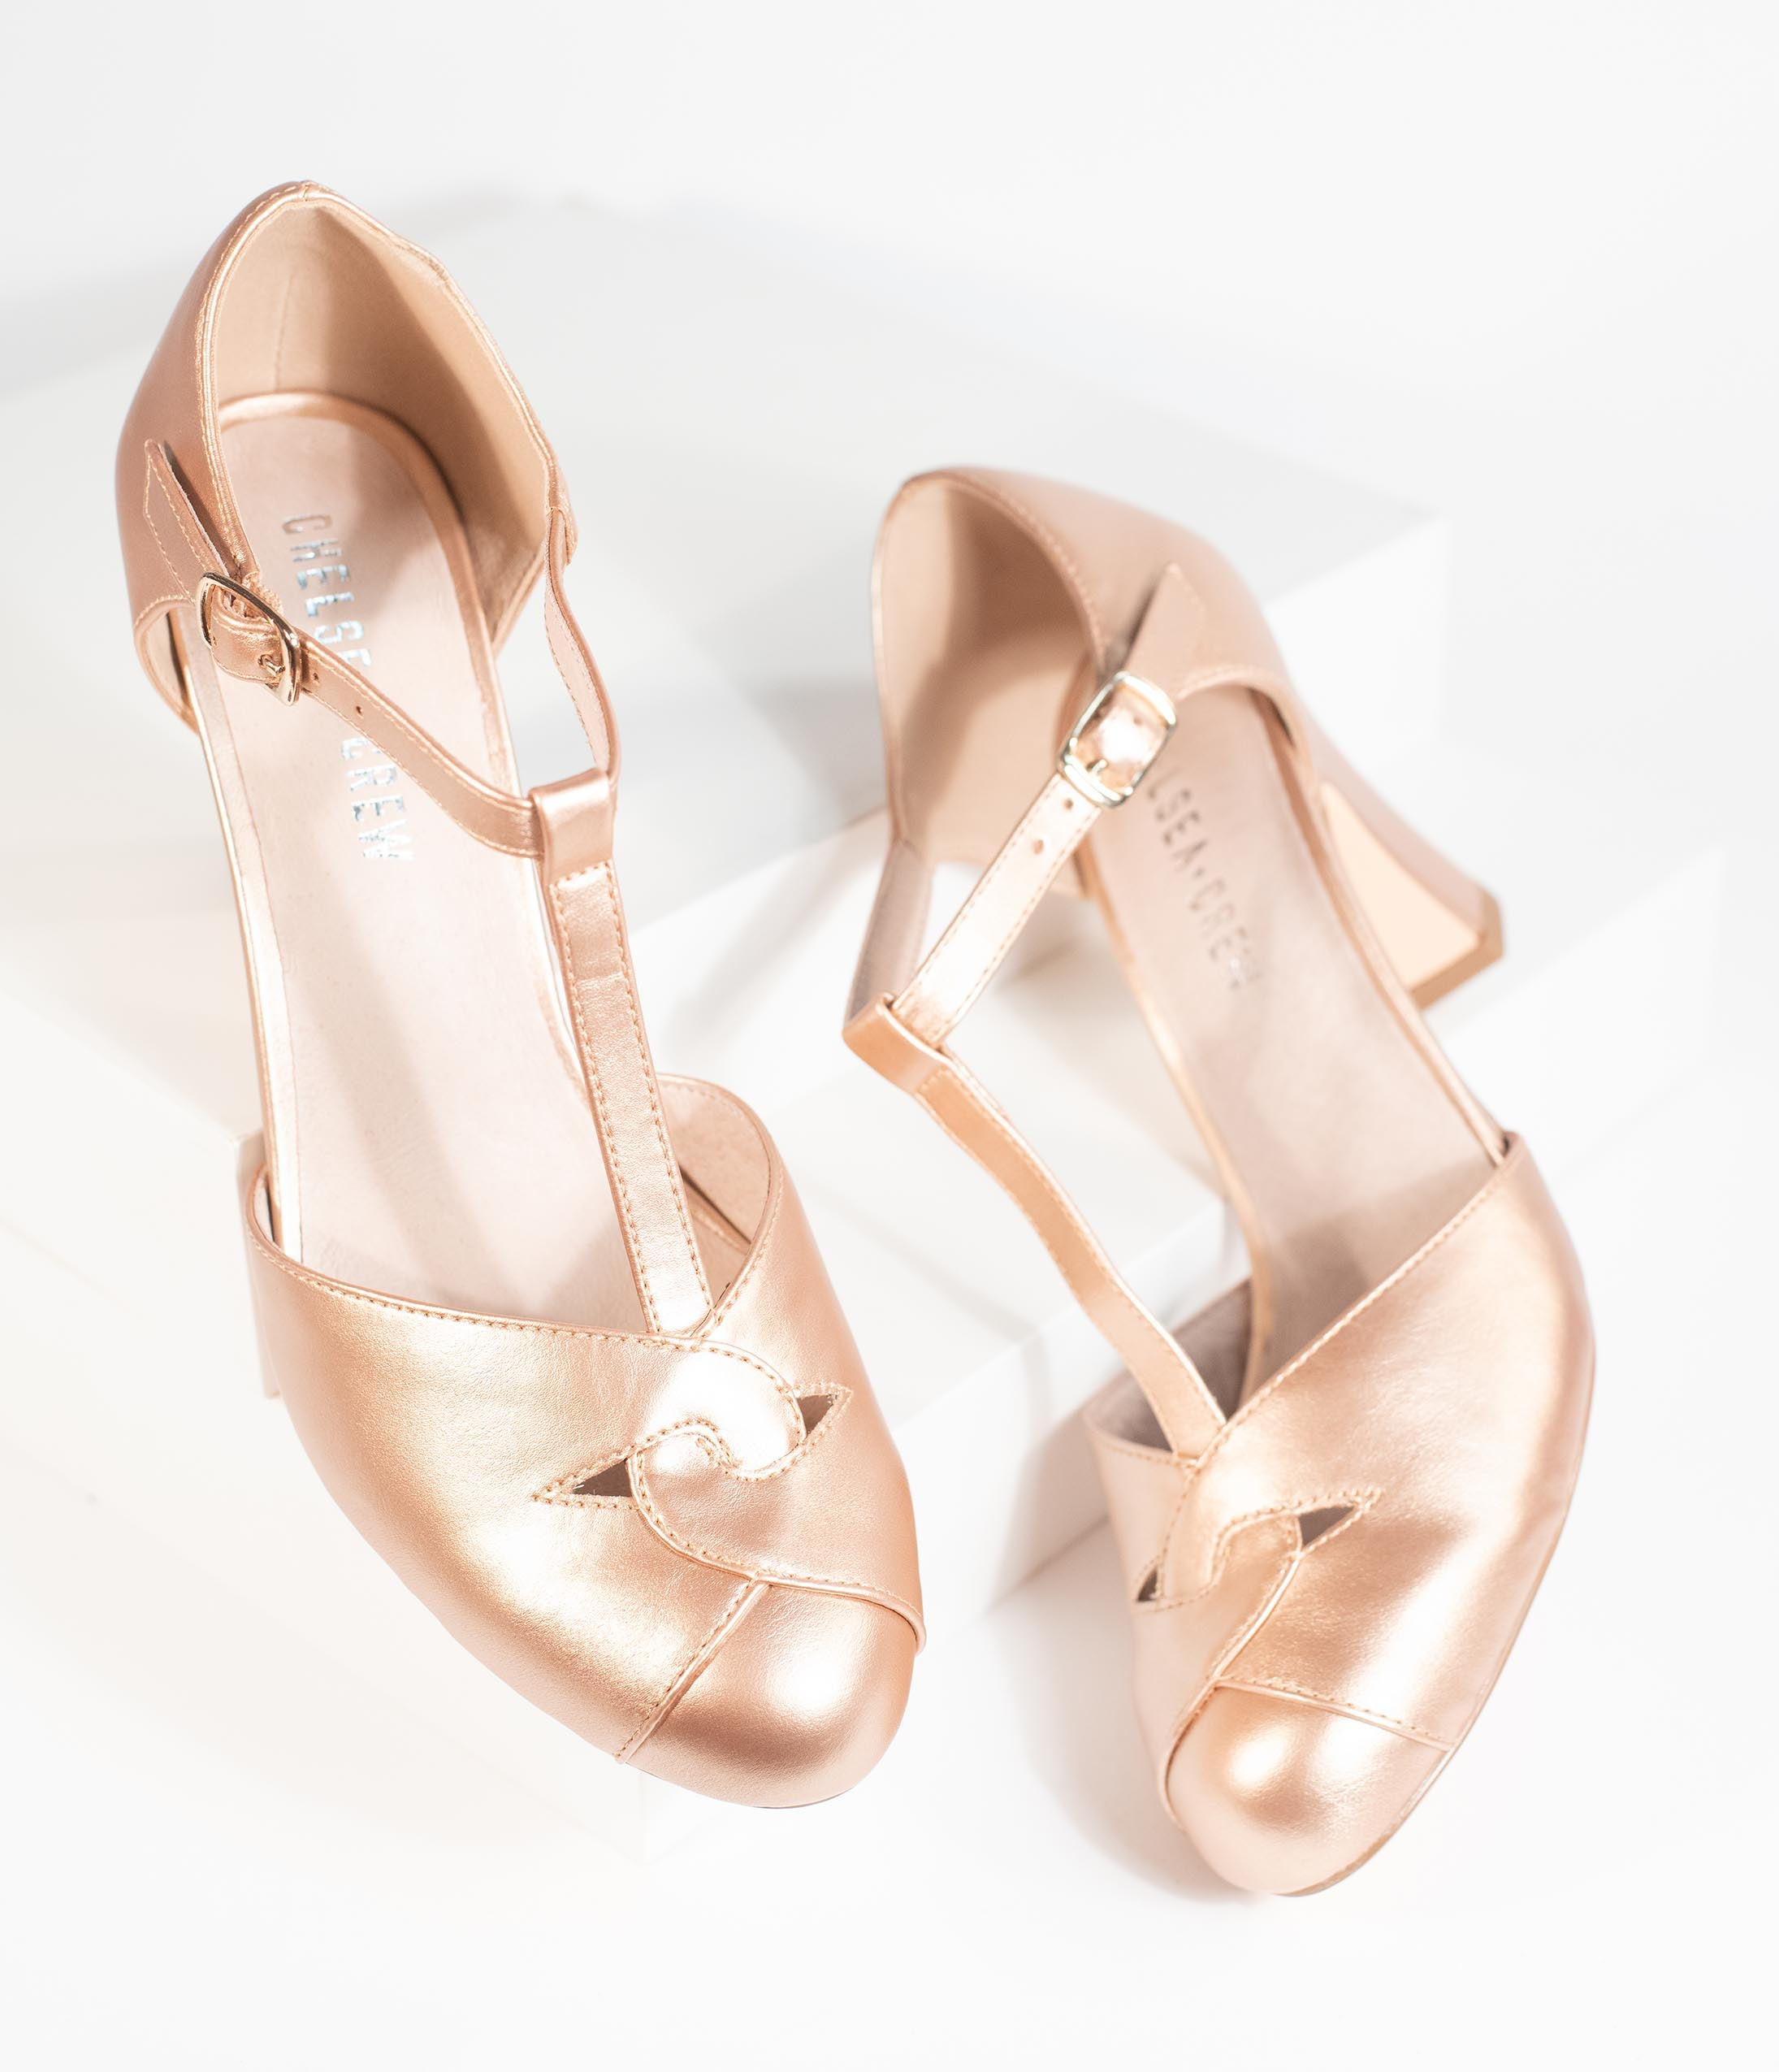 Vintage Heels, Retro Heels, Pumps, Shoes Chelsea Crew Rose Gold Leatherette Glinda T-Strap Heels $78.00 AT vintagedancer.com